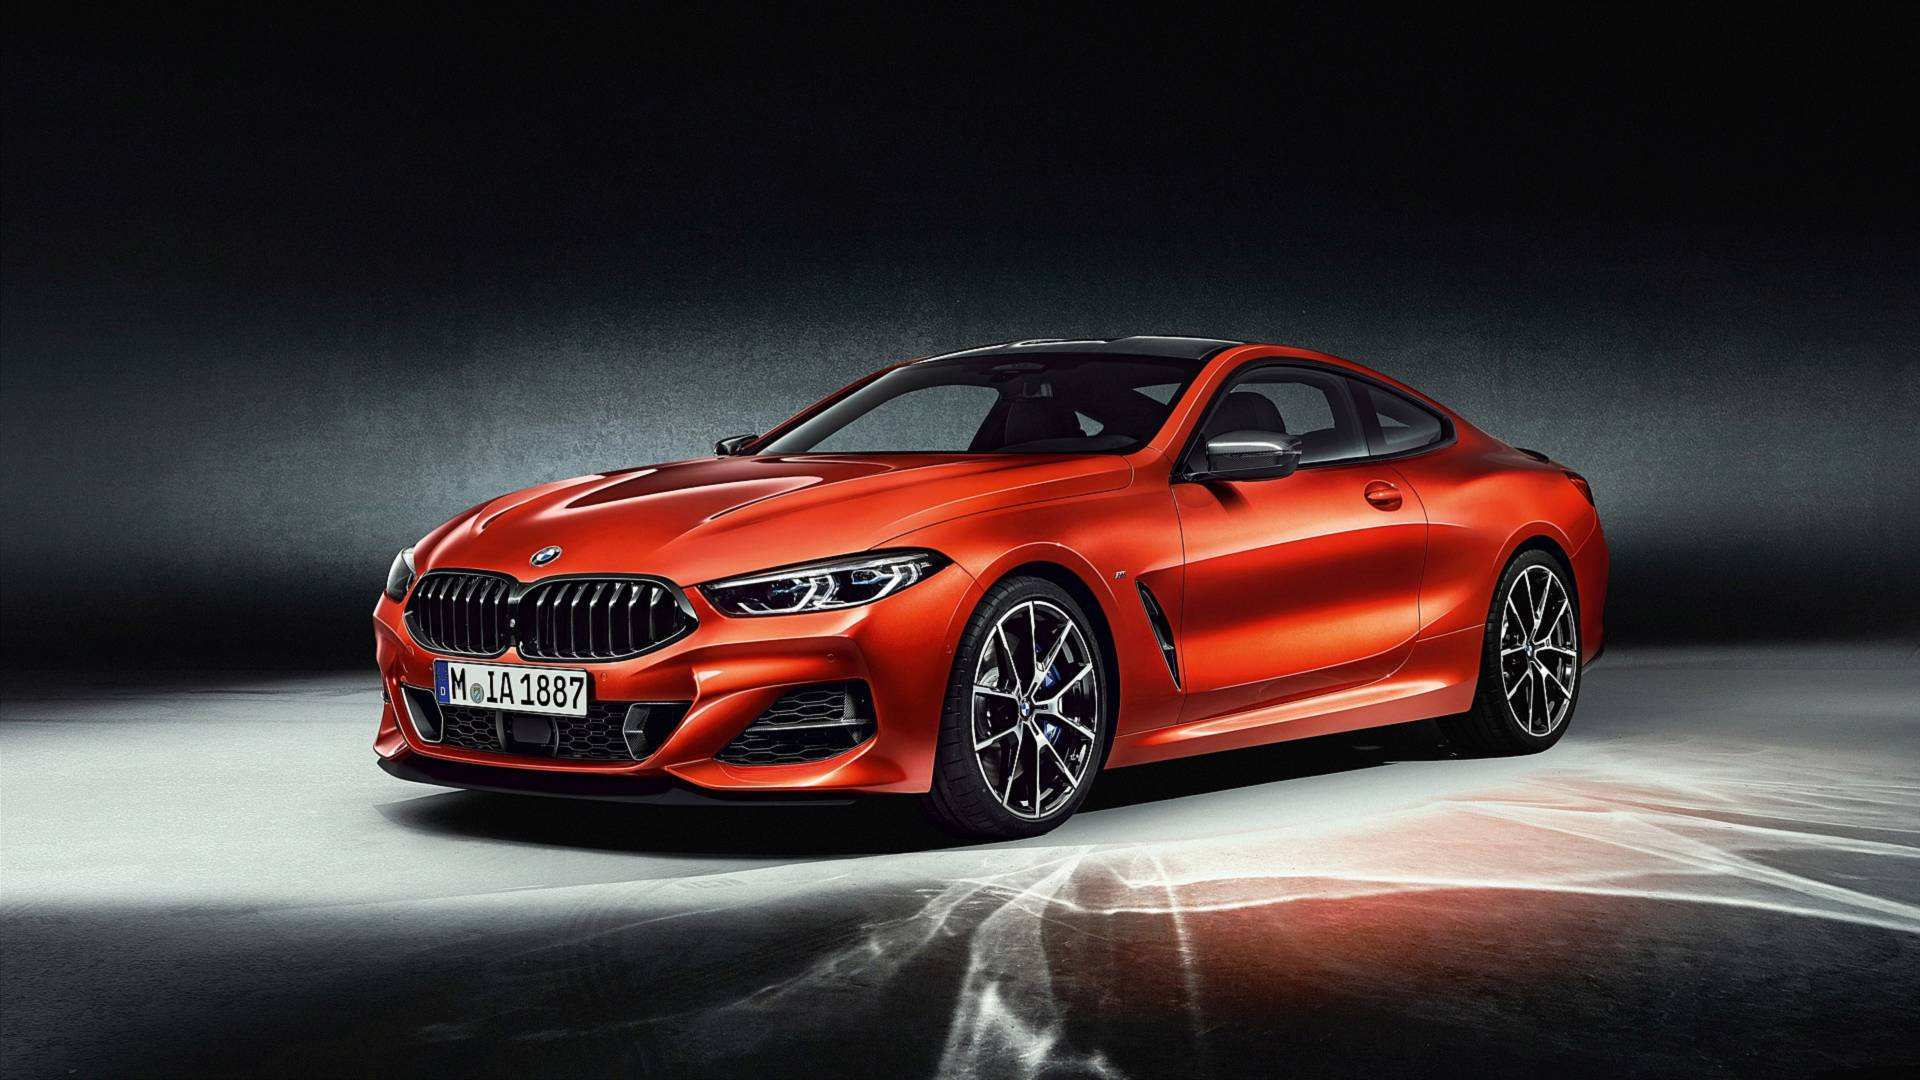 95 All New 2019 8 Series Bmw Release Date